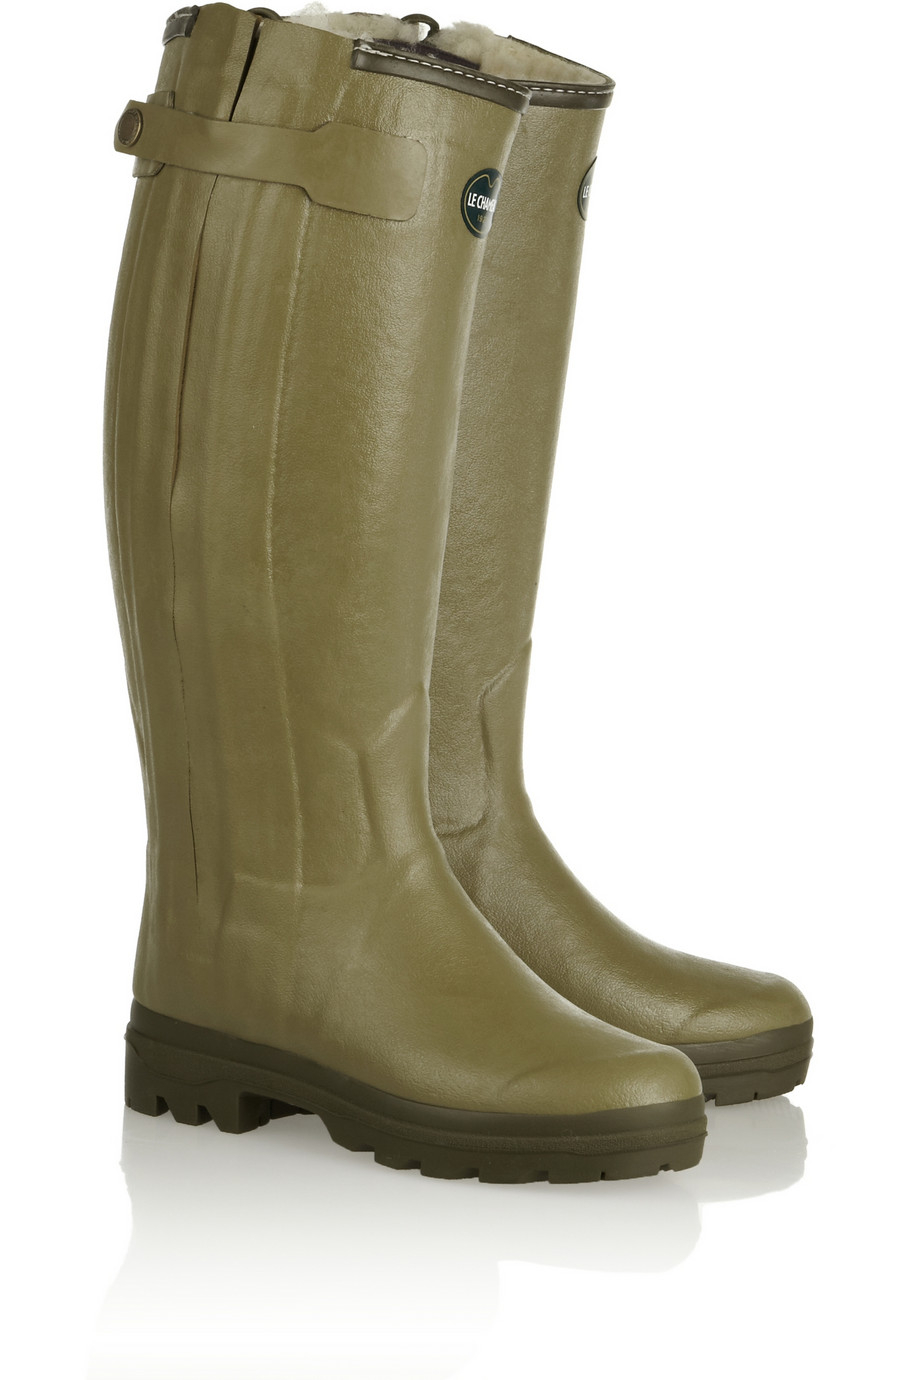 Le Chameau Chasseur Shearling Lined Rubber Rain Boots In